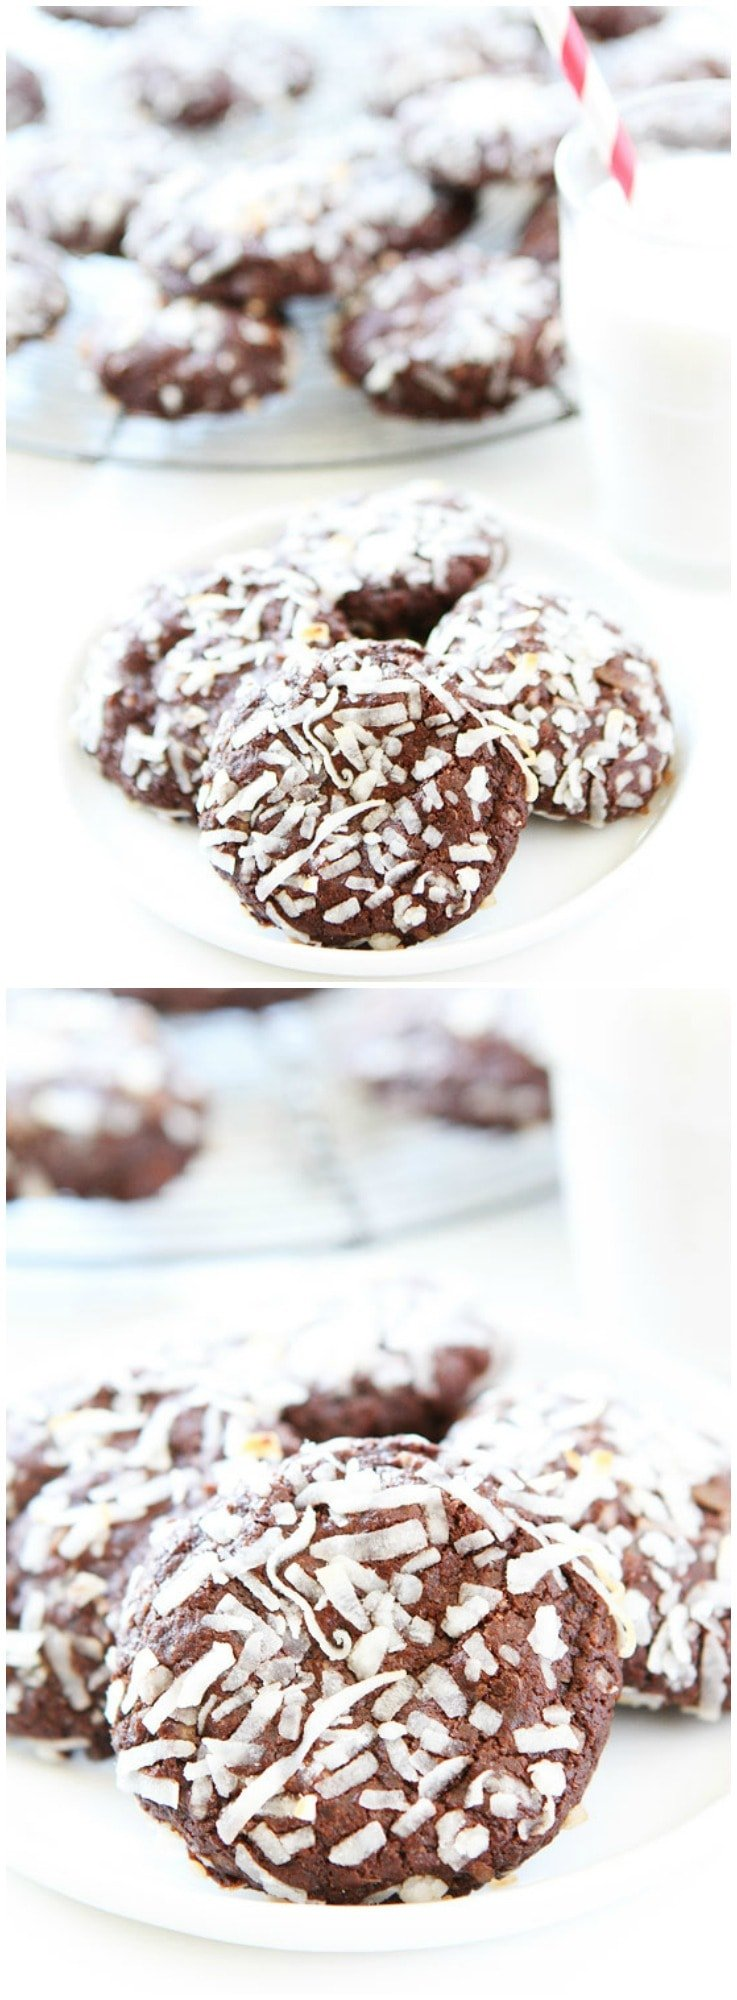 Vegan Chocolate Coconut Cookies on twopeasandtheirpod.com You will never know these rich and fudgy chocolate cookies are vegan! They are SO good!